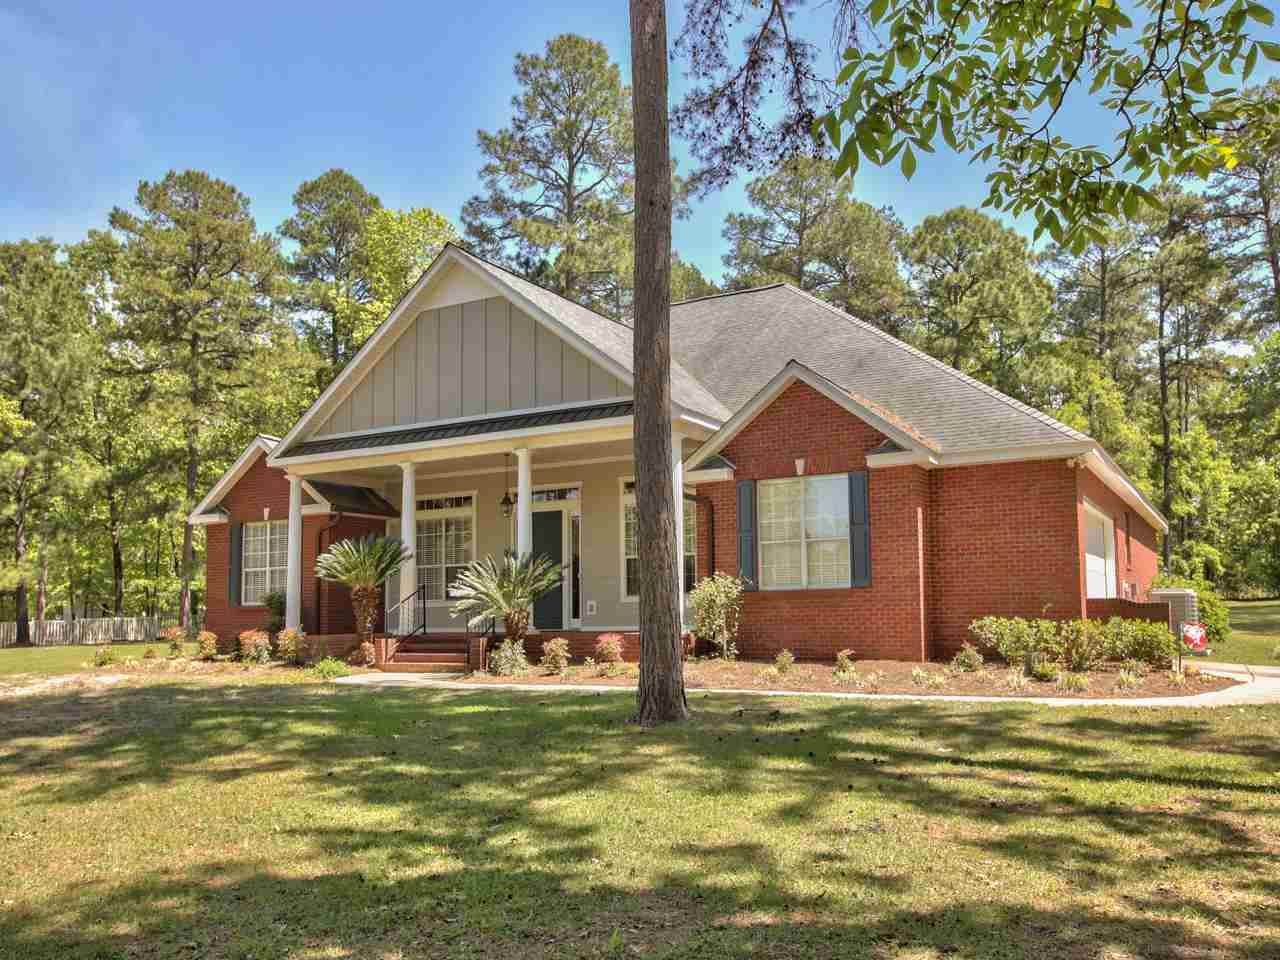 Photo of 7432 Dresden Road, TALLAHASSEE, FL 32309 (MLS # 330622)